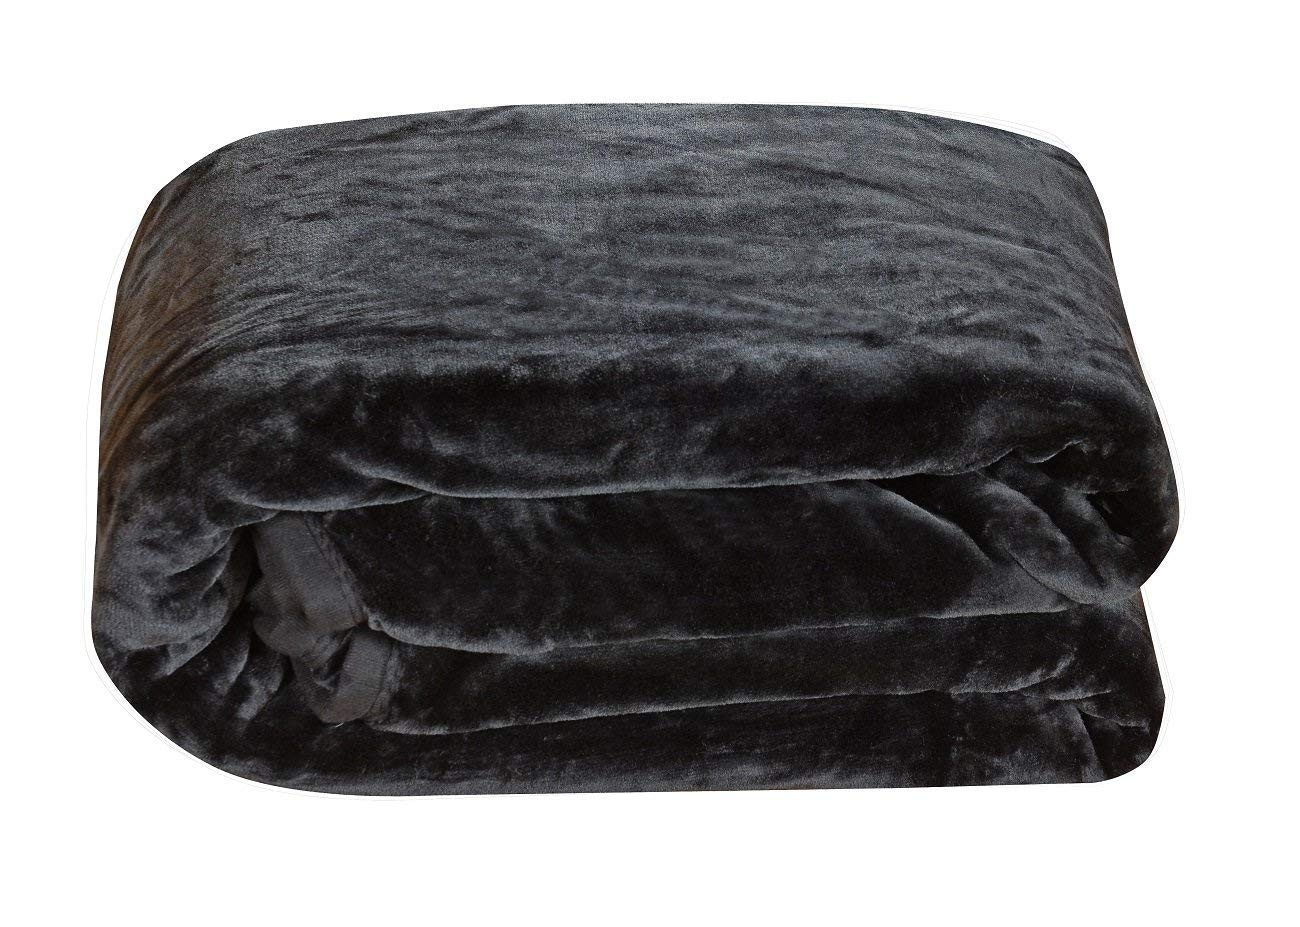 Chezmoi Collection Heavy Thick One Ply Korean Style Faux Mink Blanket 9-Pound Oversized King 105x92 King, Navy